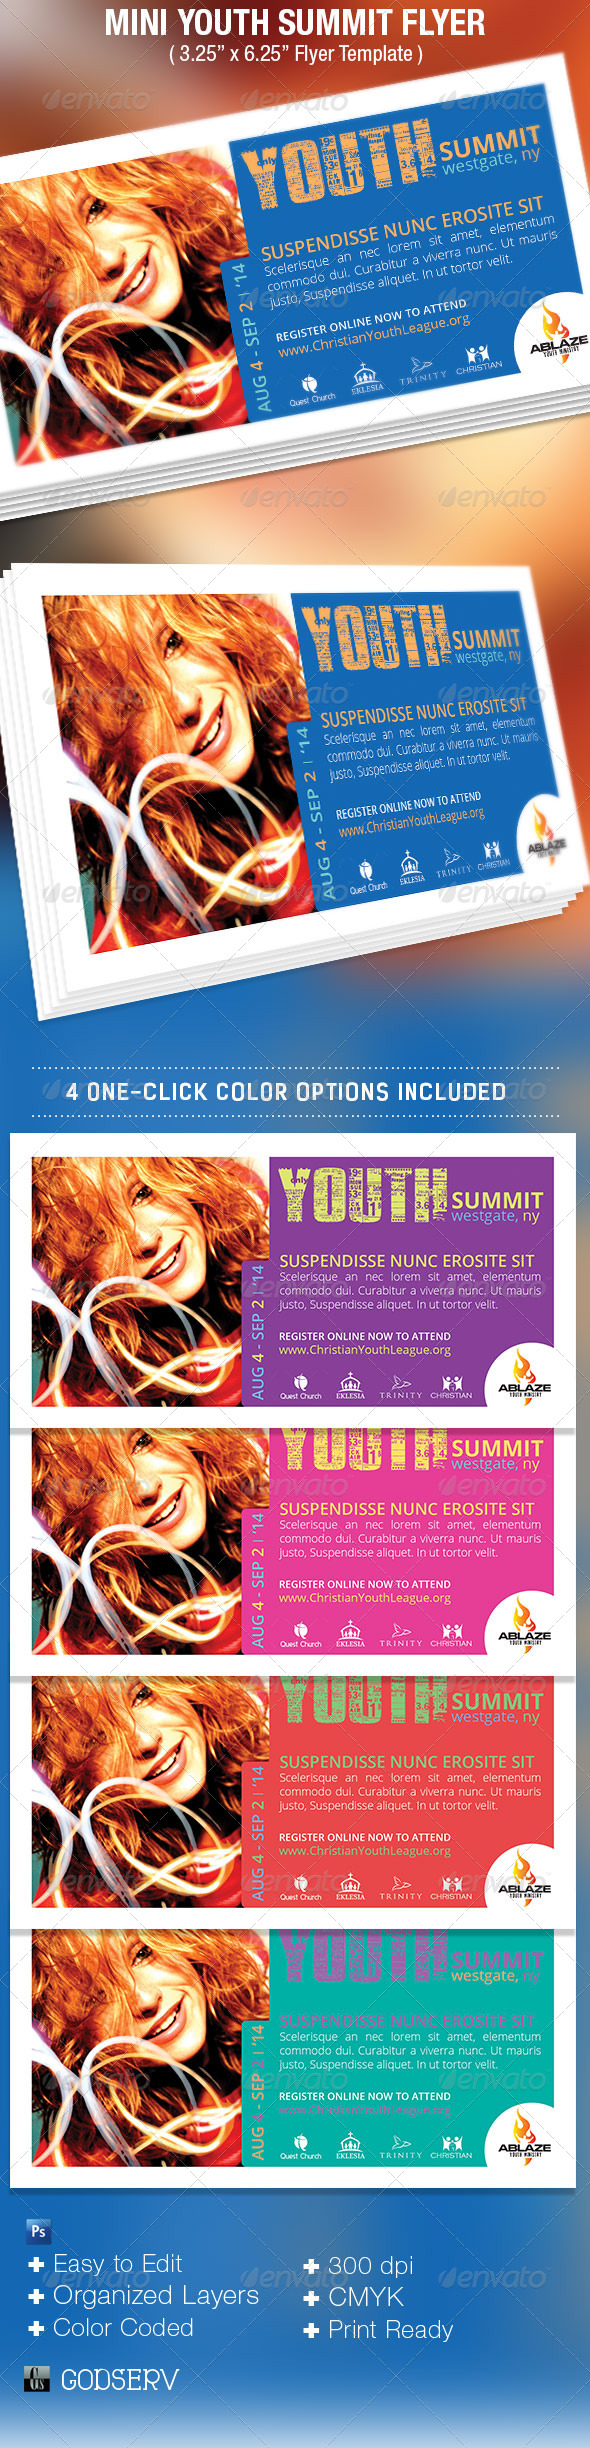 Mini Youth Summit Flyer Template - Church Flyers